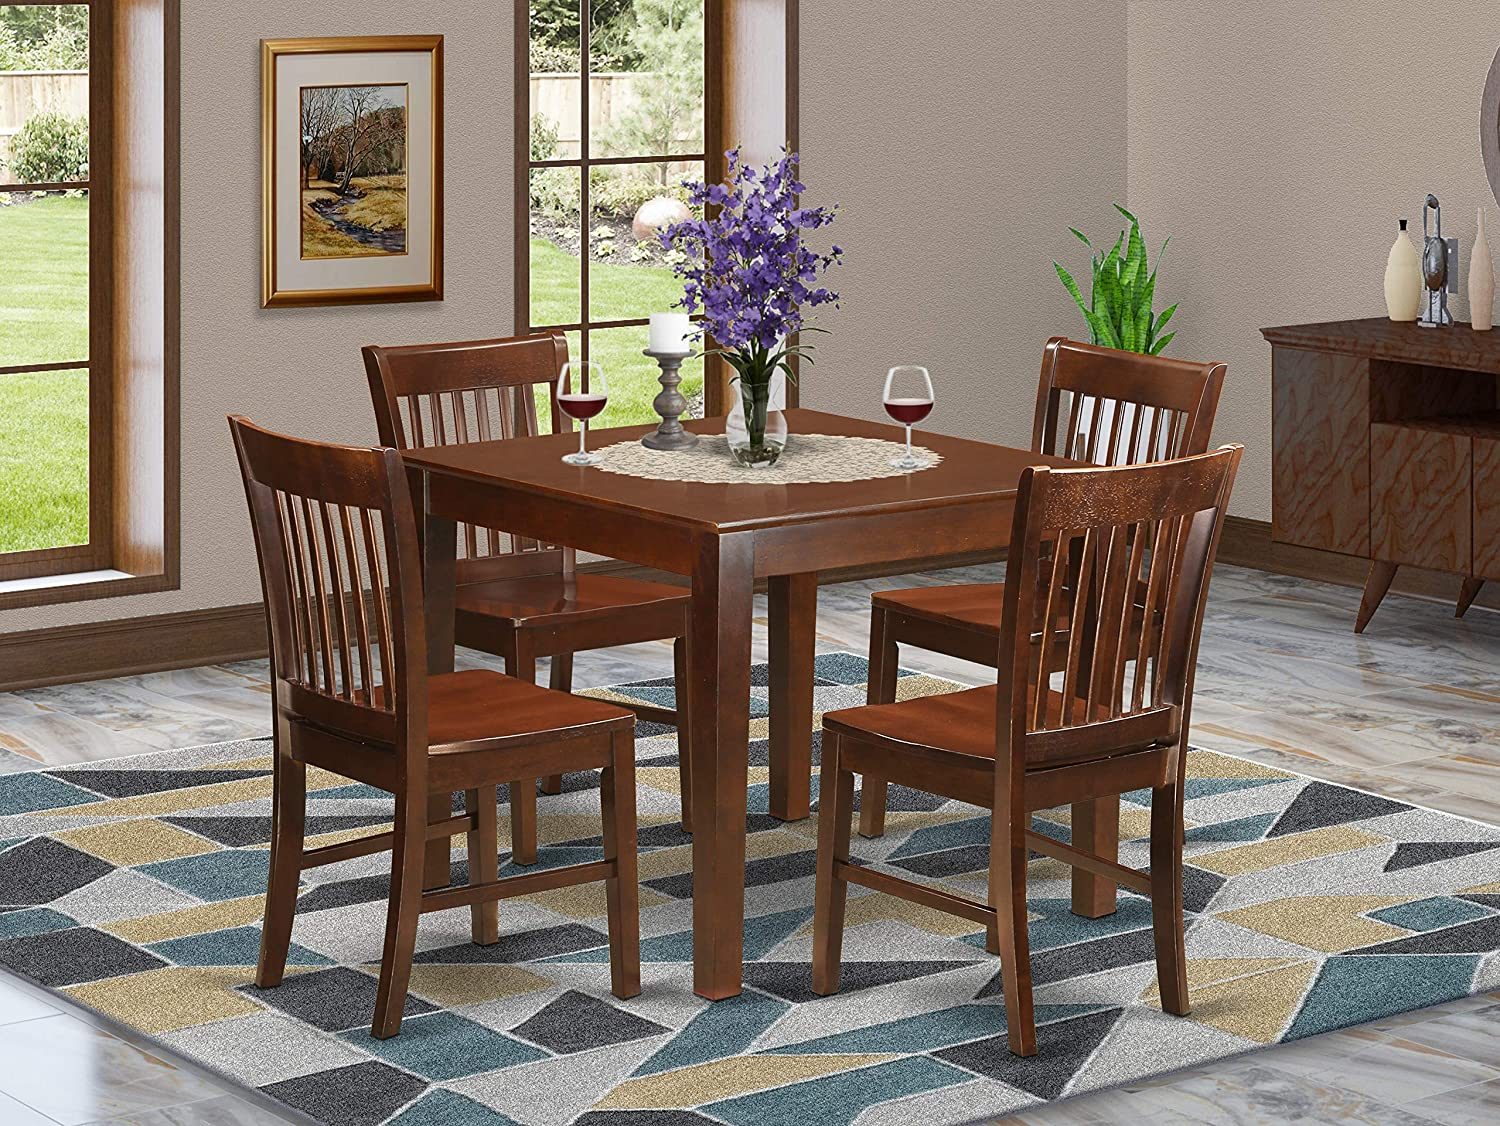 Amazon Com 5 Pc Kitchen Table Set With A Table And 4 Dining Chairs In Mahogany Furniture Decor